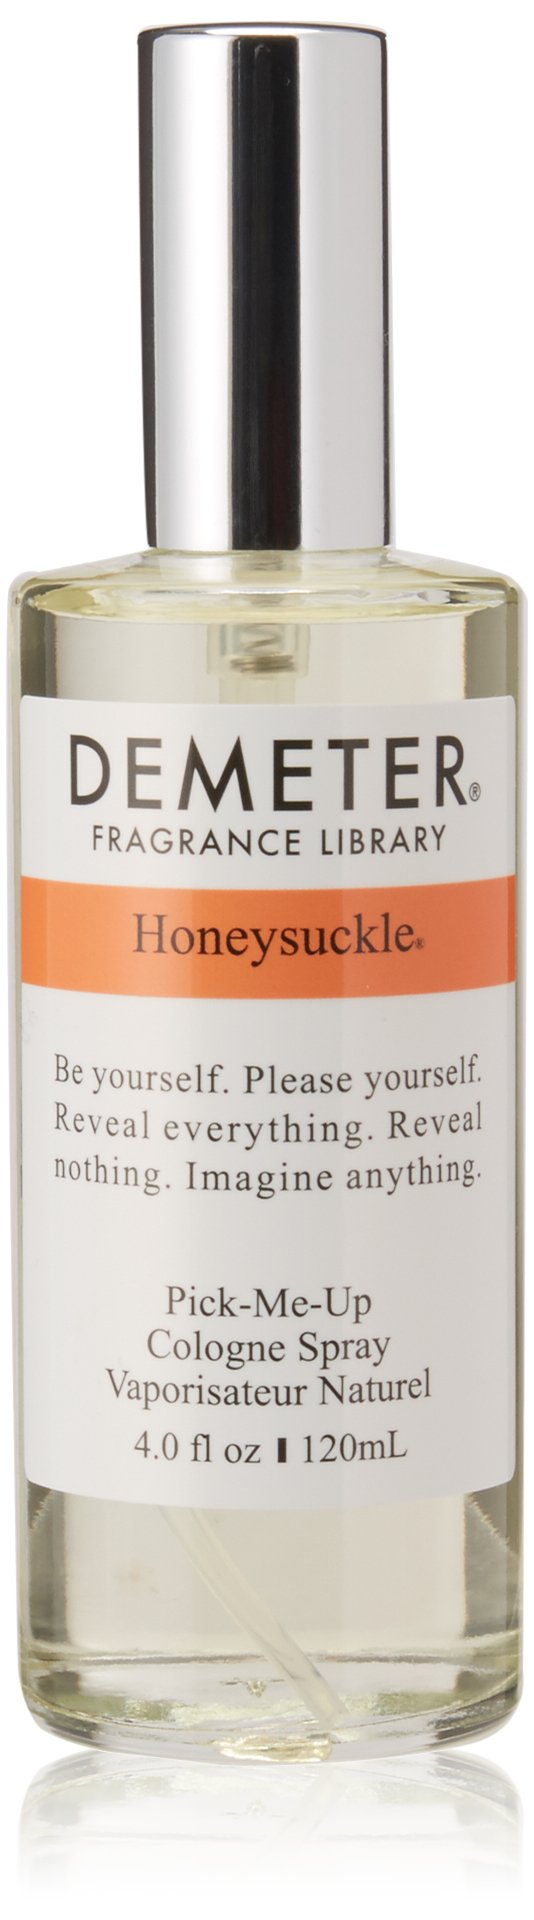 Demeter By Demeter For Men and Women. Honeysuckle Cologne Spray 4 Ounces